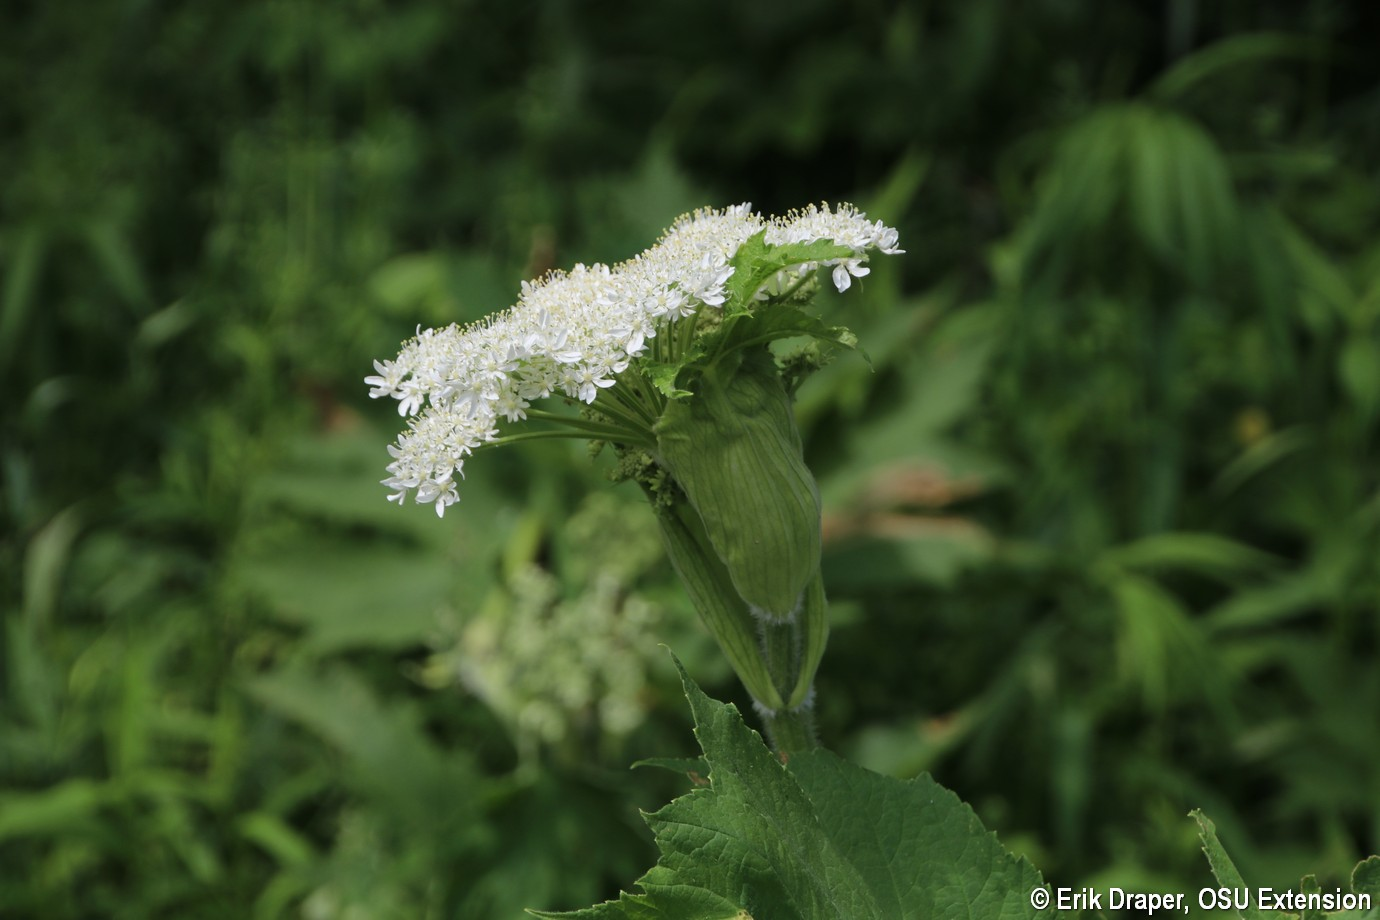 Leaf and flowers sheath of Cow Parsnip